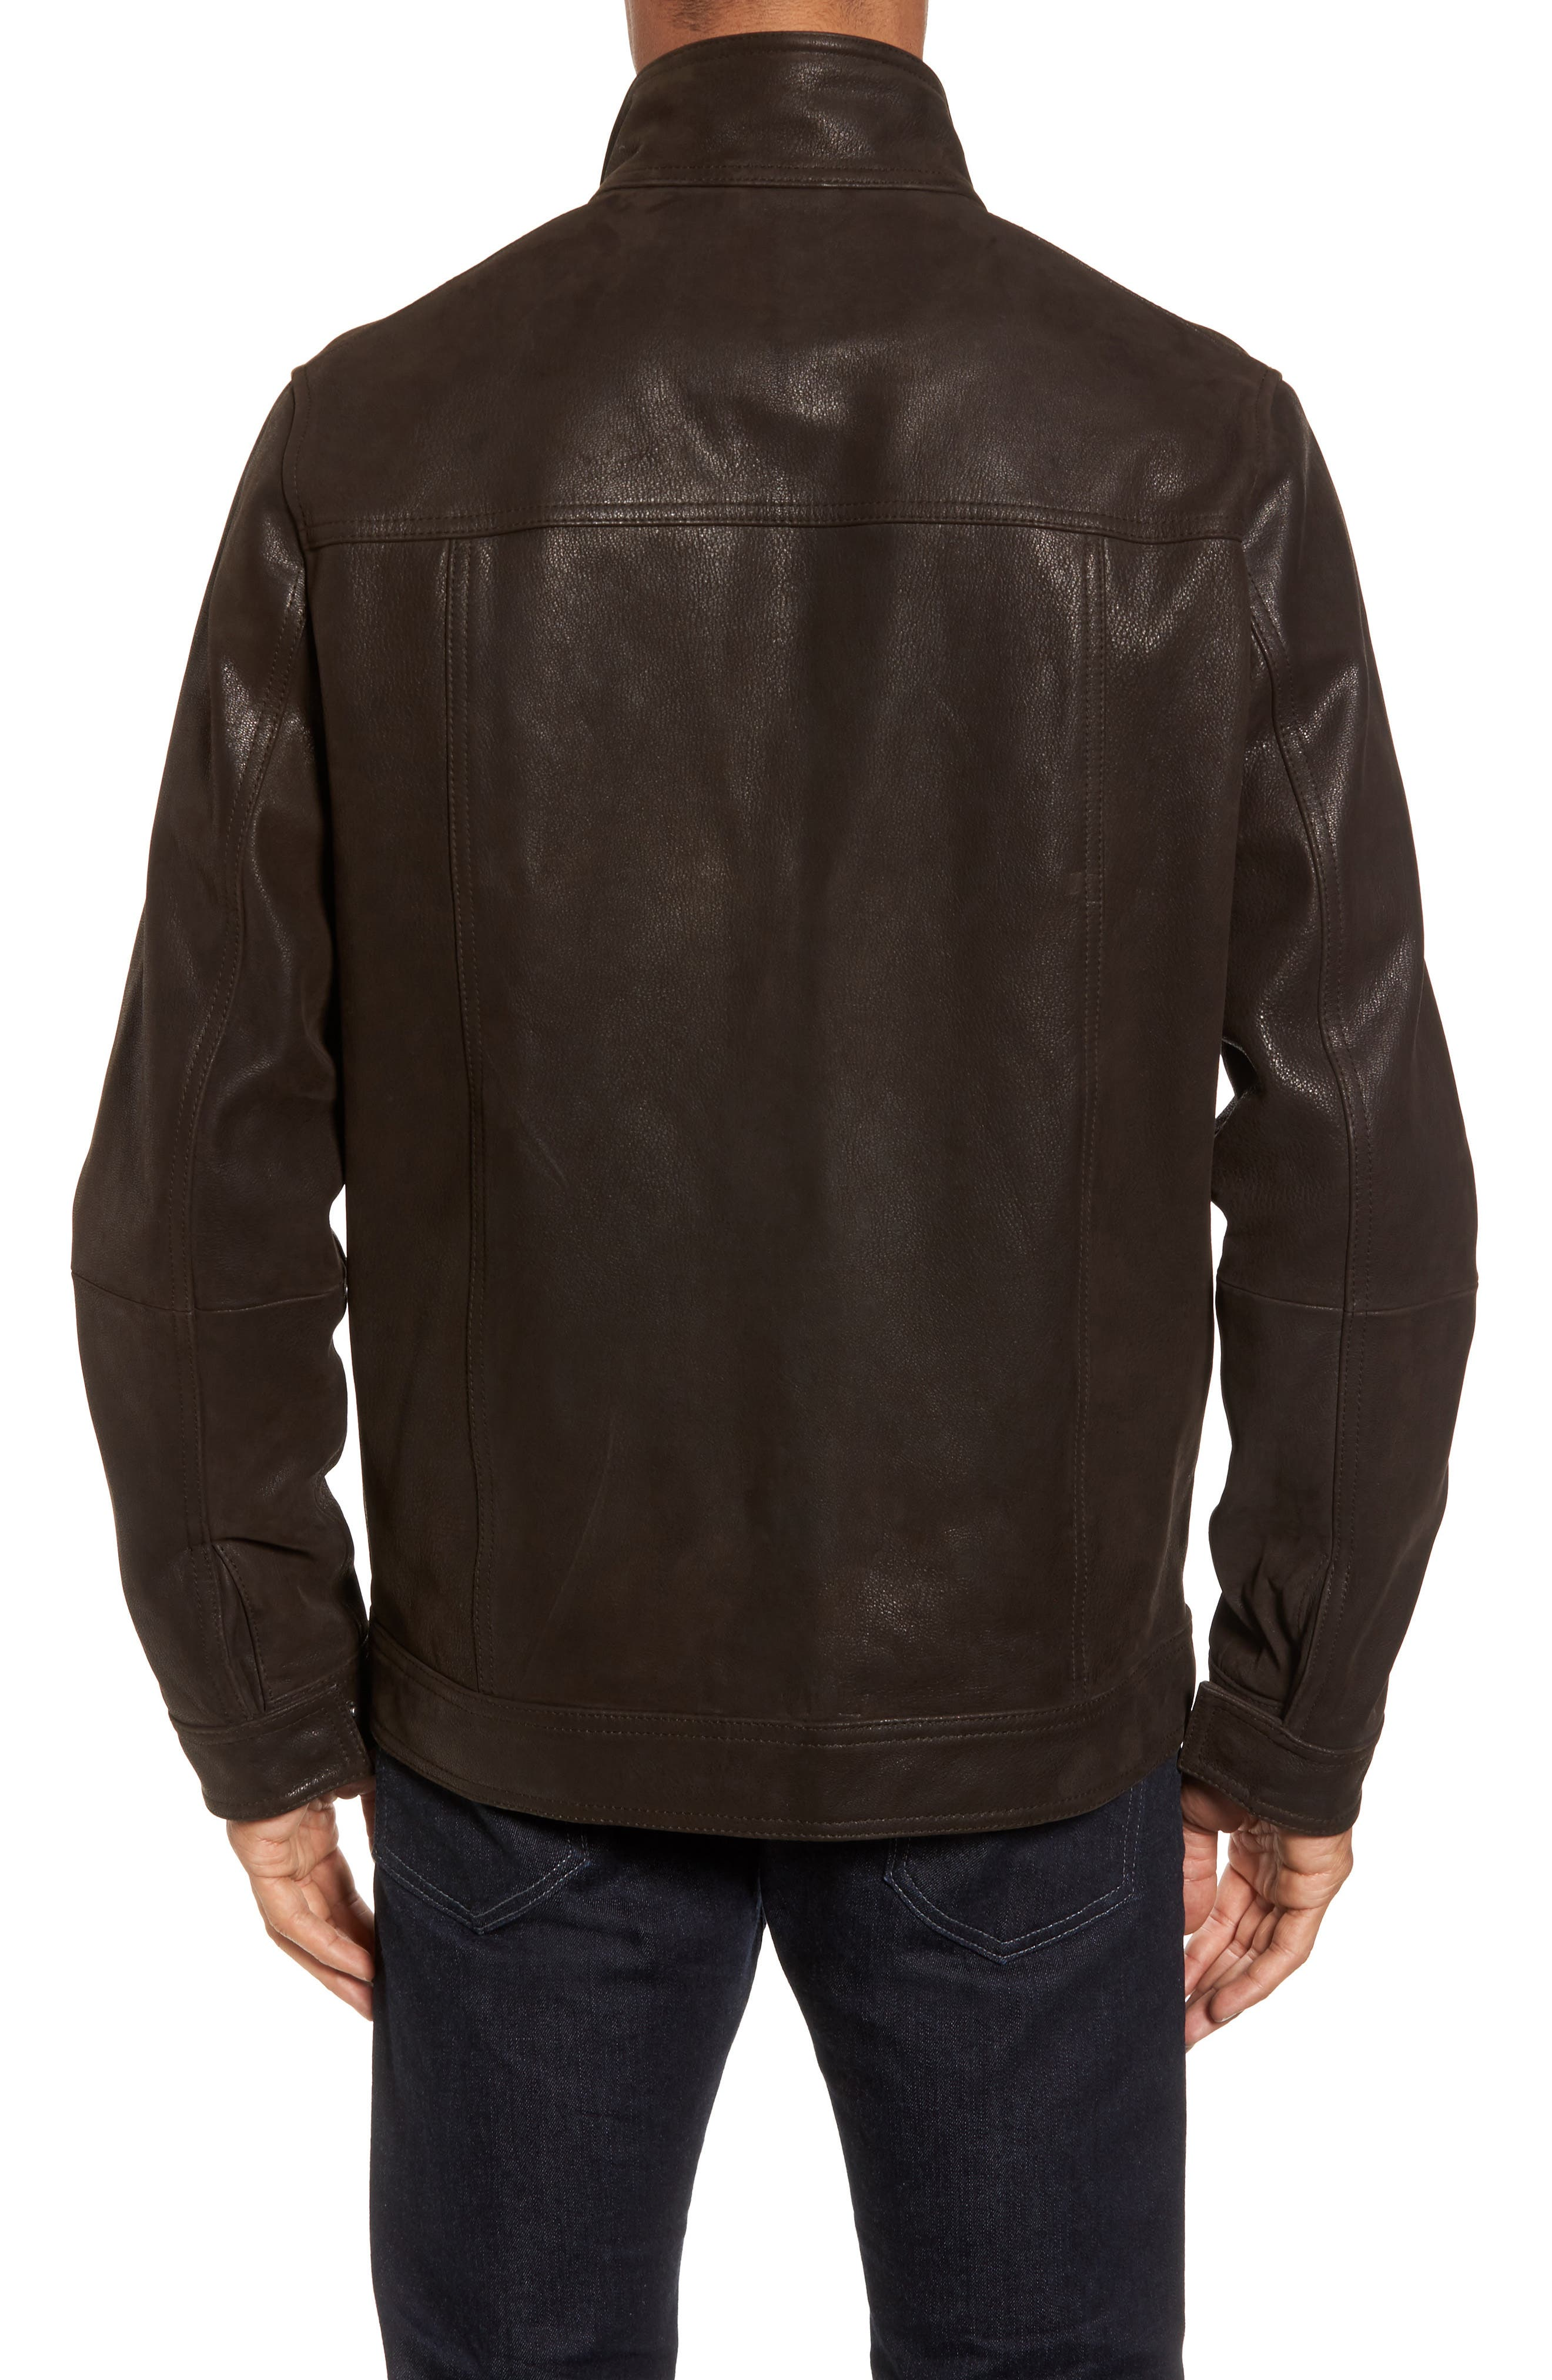 Westhaven Distressed Leather Bomber Jacket,                             Alternate thumbnail 2, color,                             Chocolate